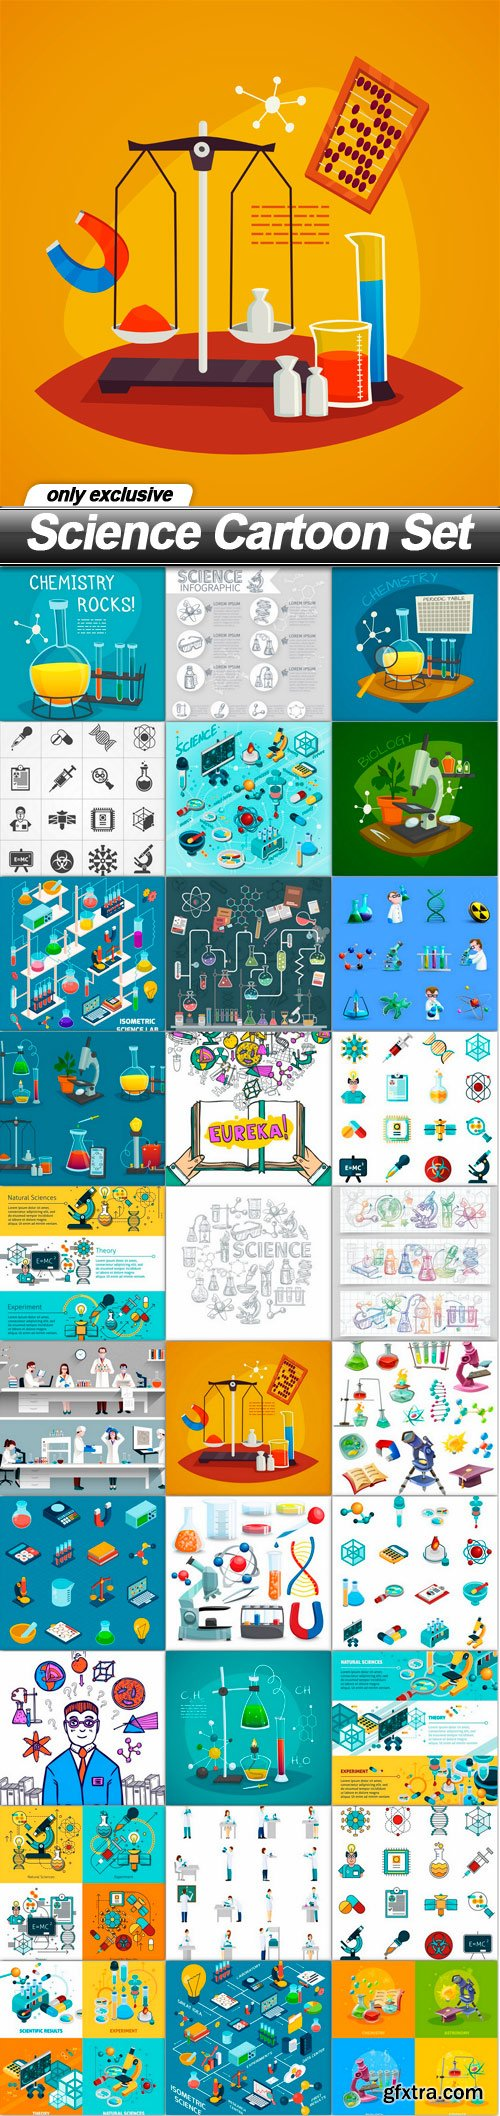 Science Cartoon Set - 30 EPS